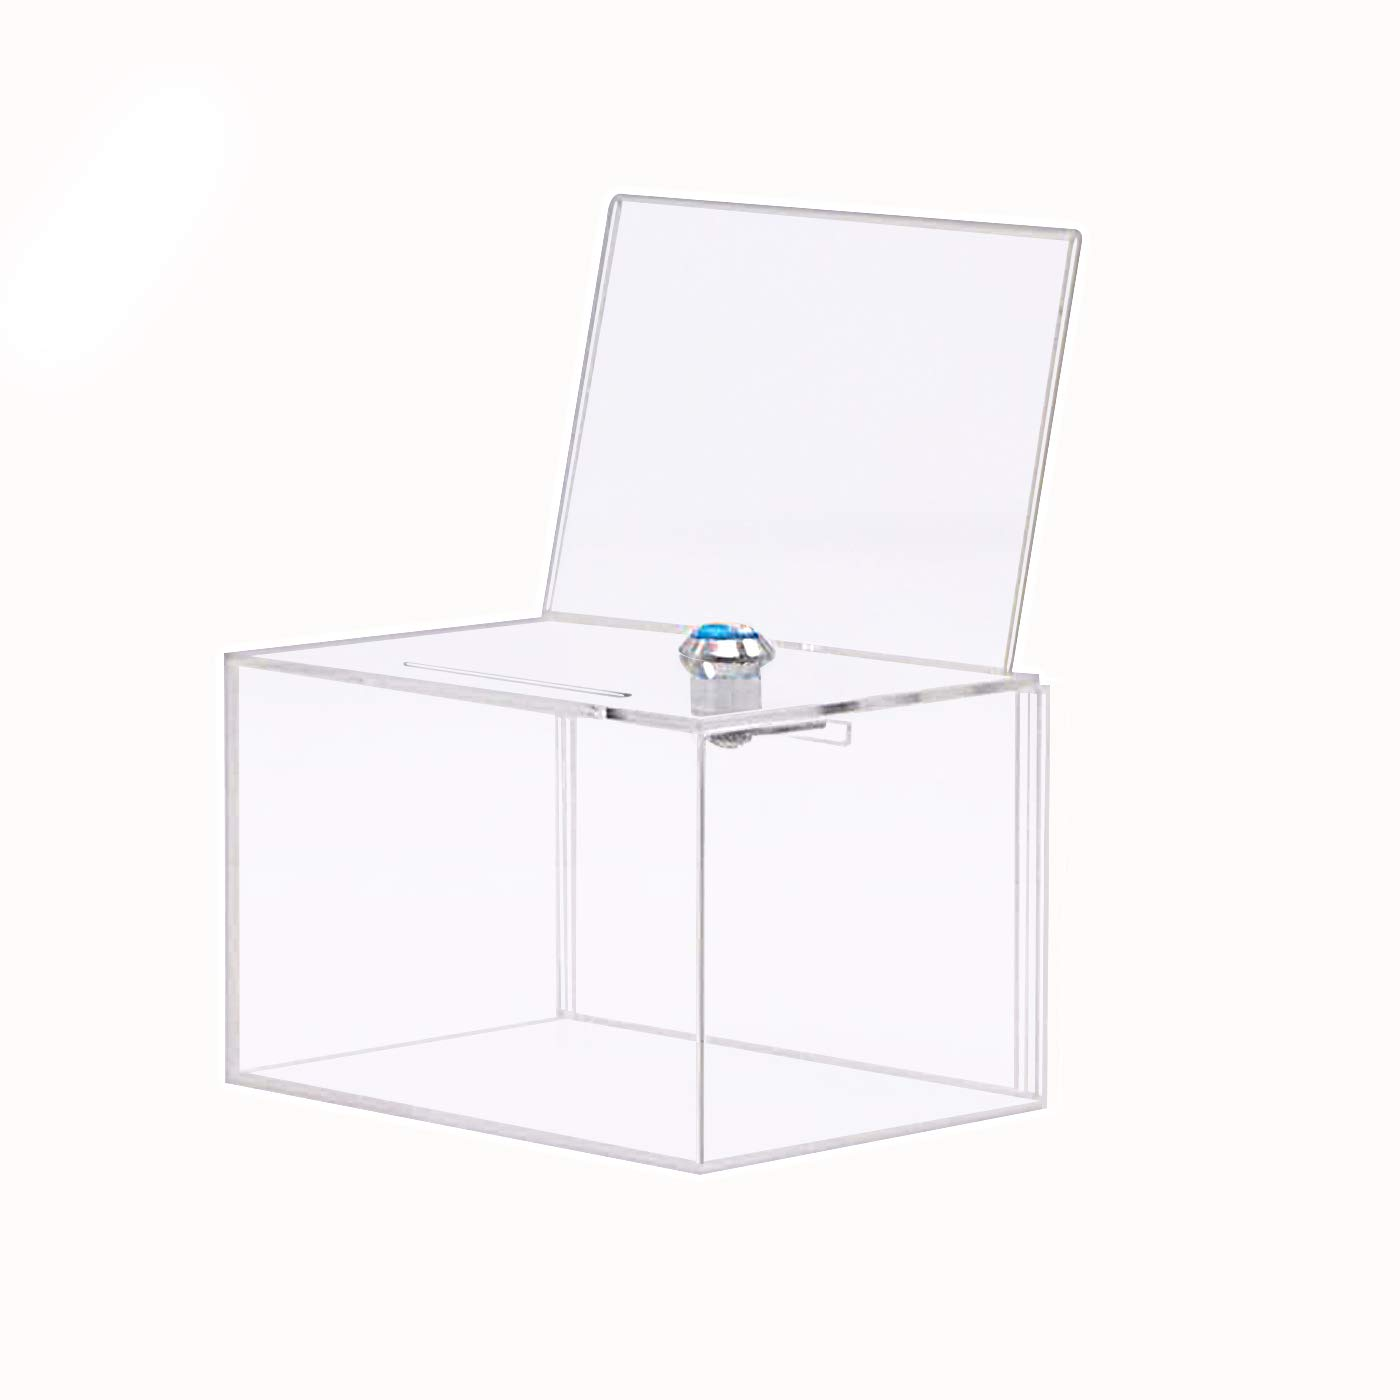 Donation Box with Lock,Acrylic Ballot/Suggestion Box with 4x6 Ad Frame, Clear Storage Container Ticket Vote Box by SupperAcrylic